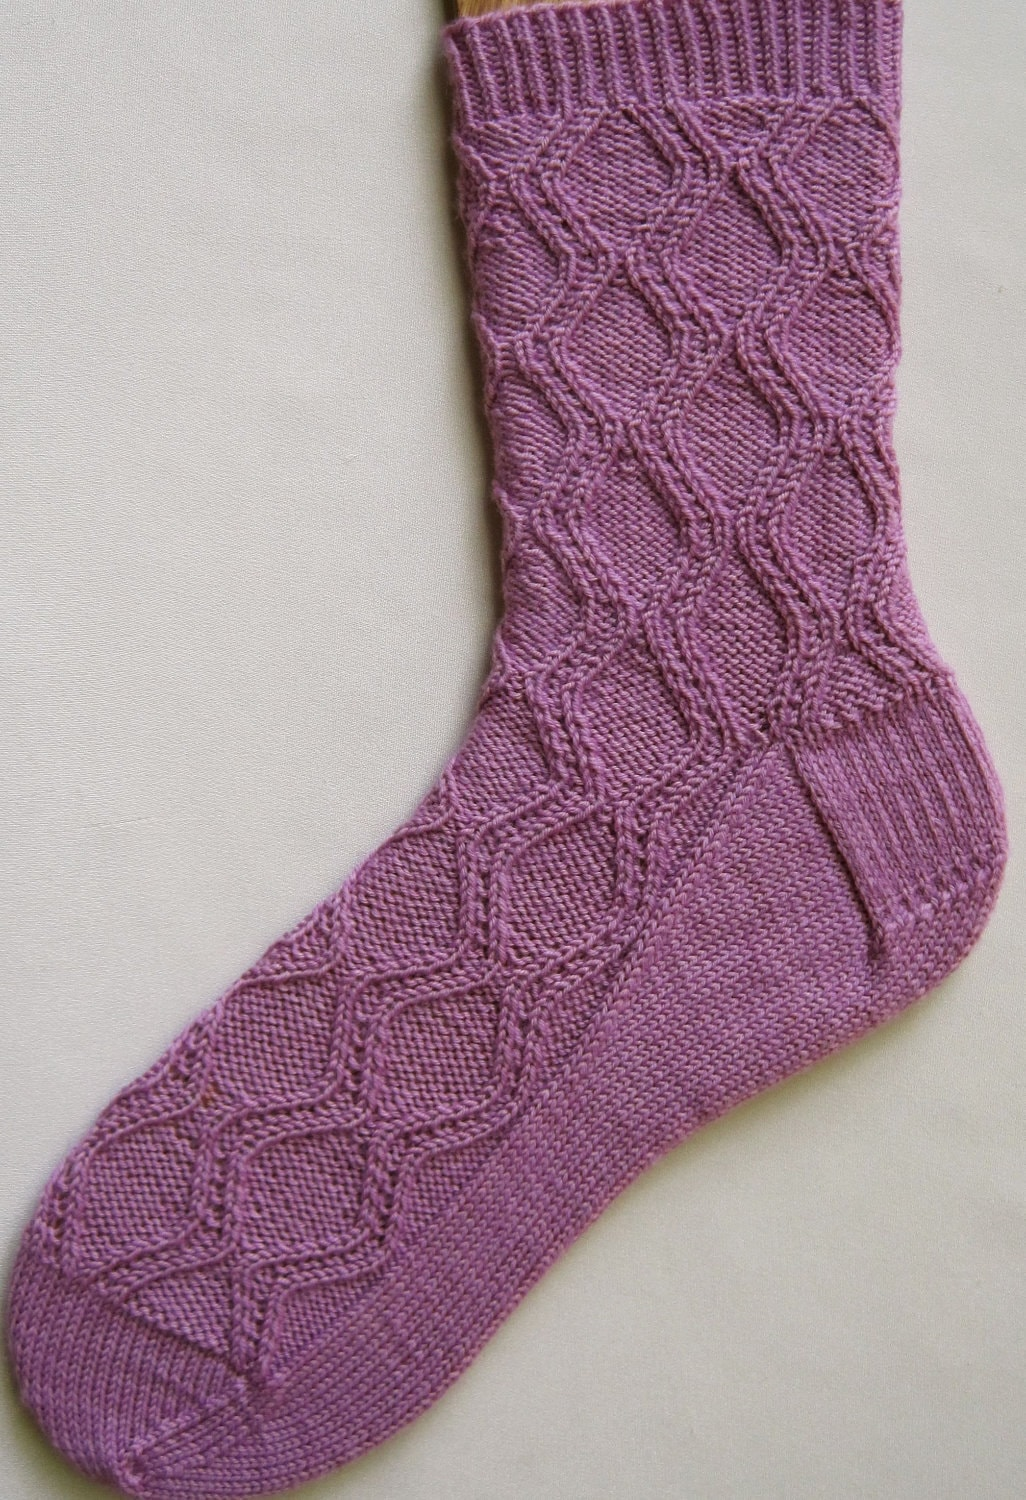 Knitted Socks Pattern : Knit Sock Pattern: Hourglass Socks